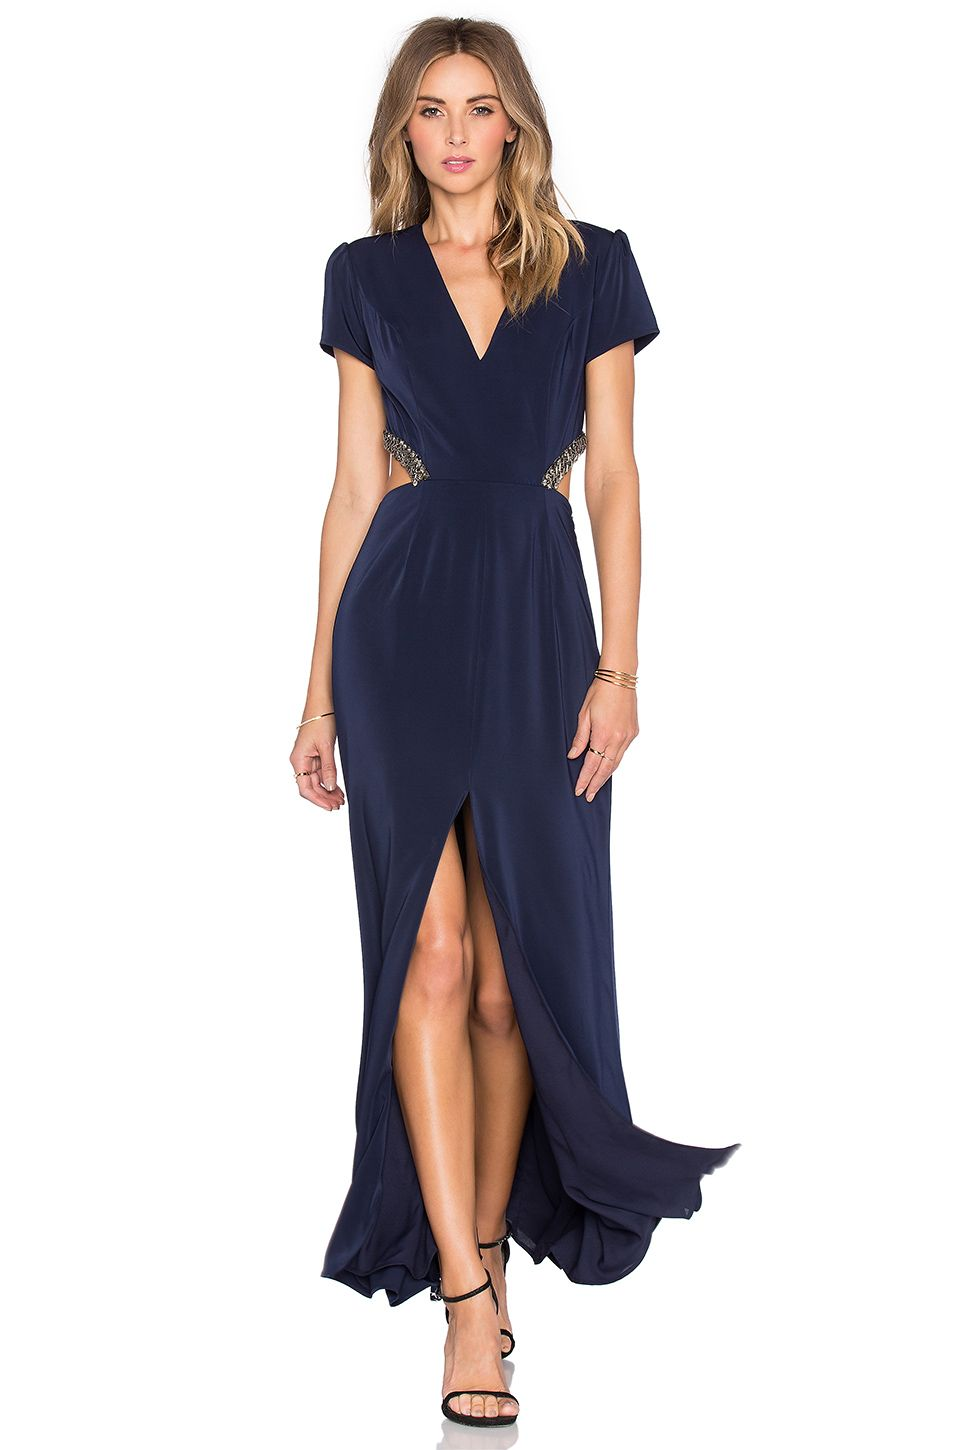 Lovers + Friends x REVOLVE Adaline Gown in Navy | MAD Style | Pinterest